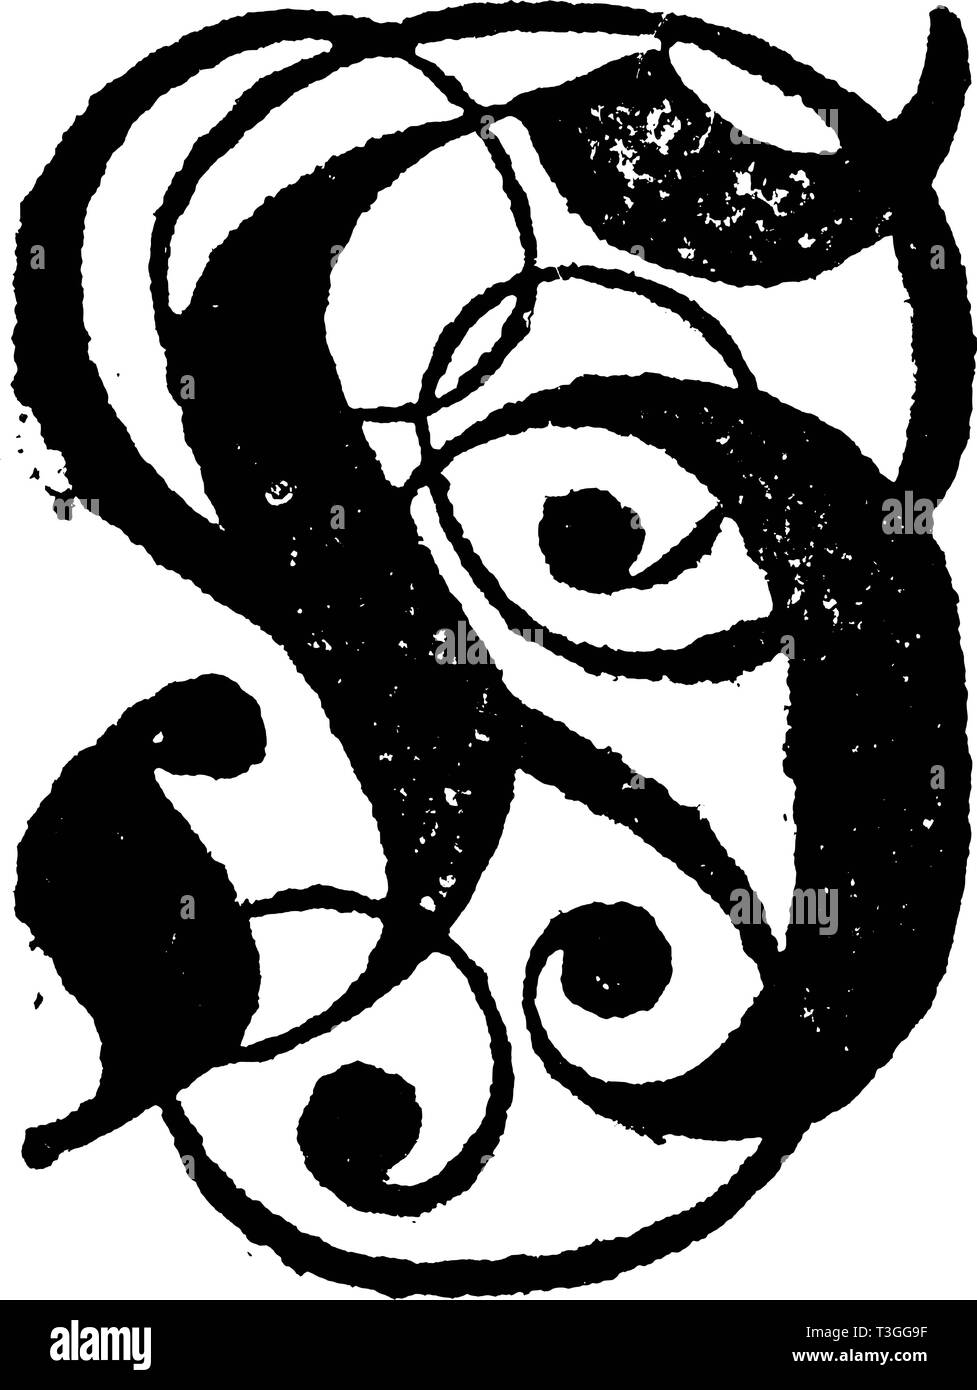 Antique vintage vector drawing or engraving of decorative ornamental capital letter H with ornaments. From Romische Historie, printed in Breslau,Kingdom of Prussia, 1762. Stock Vector